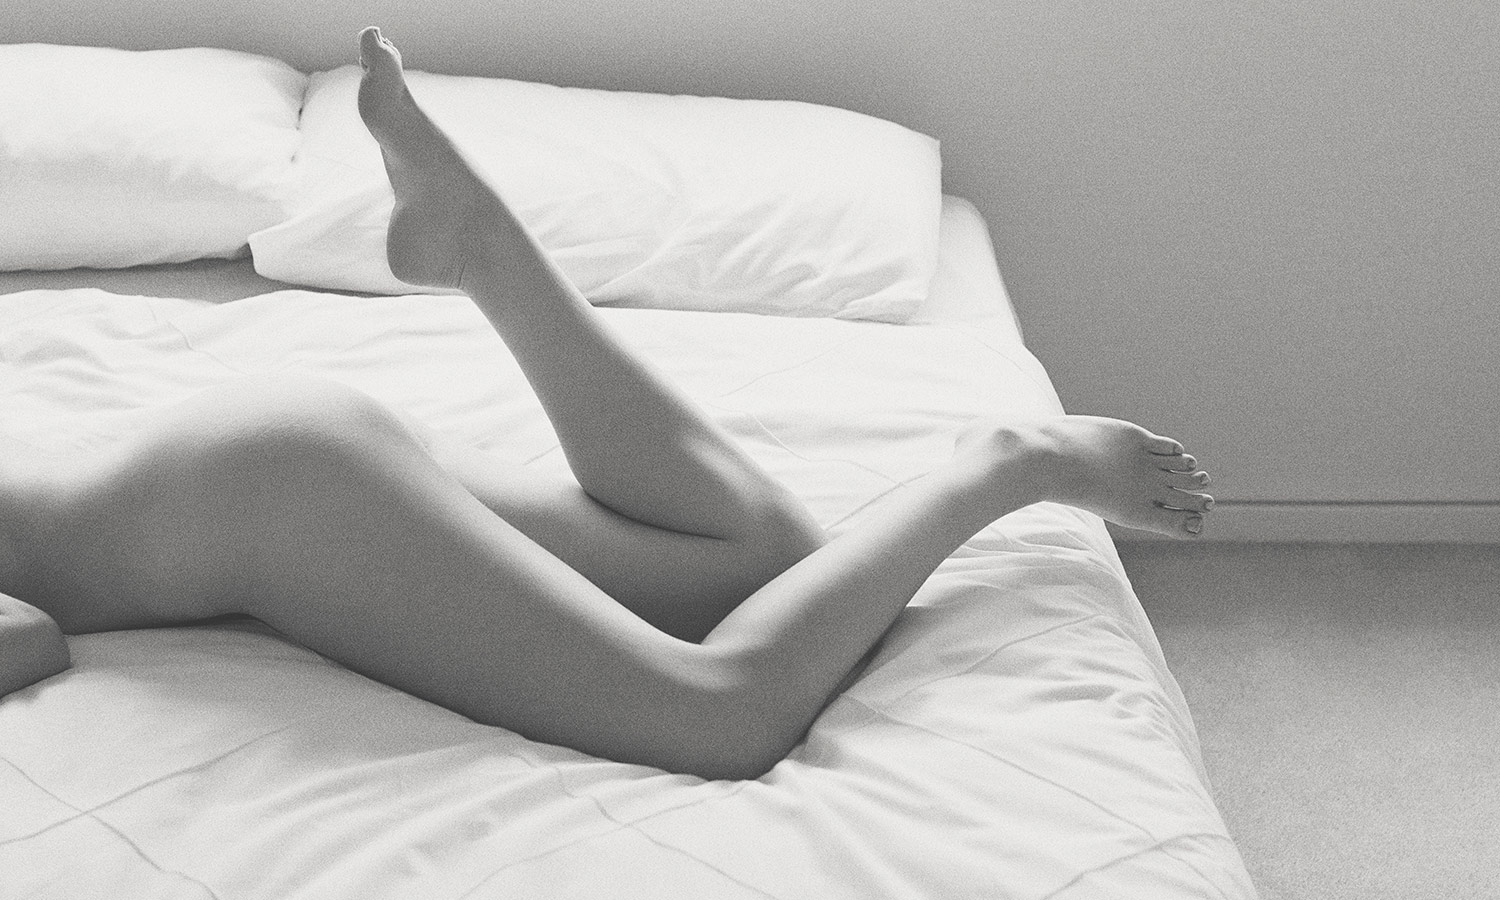 Nude Intimate Photography